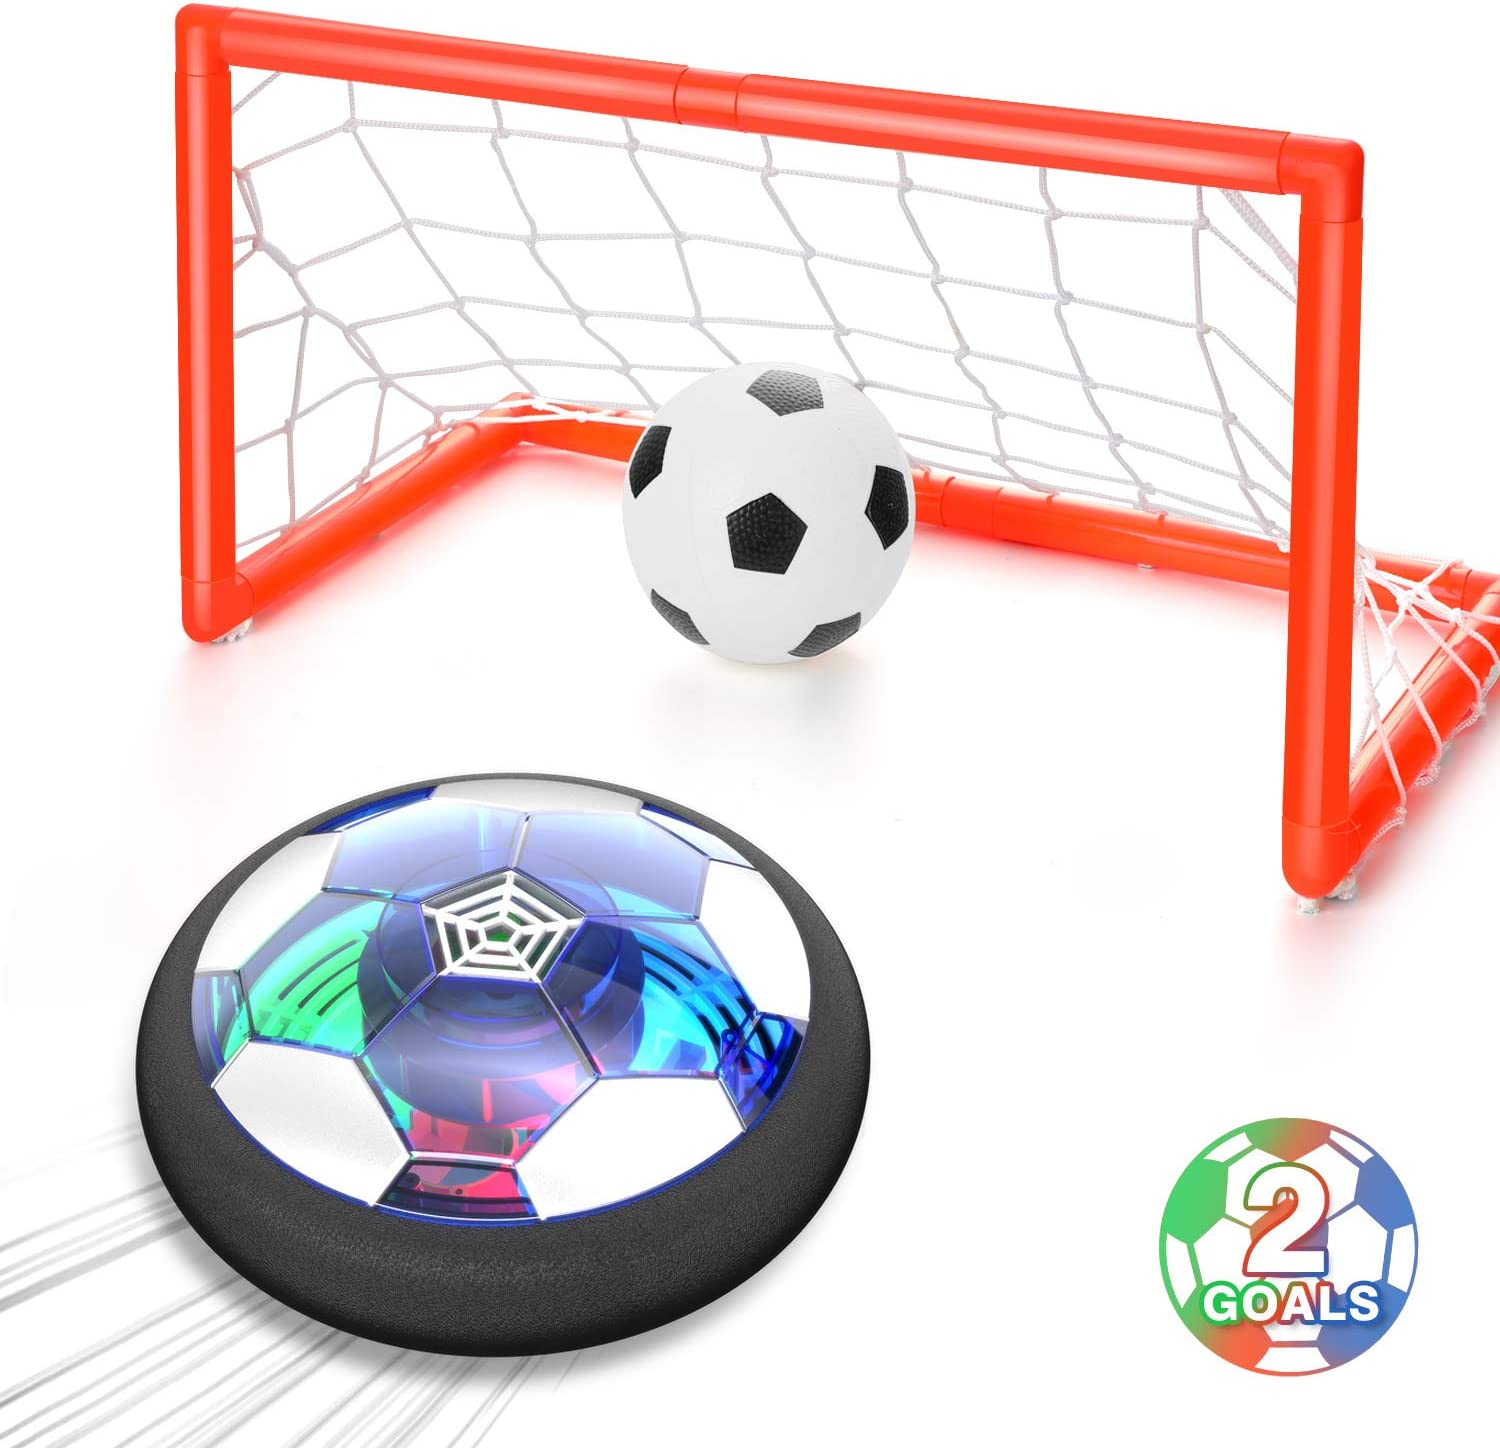 WisToyz Kids Toys Hover Soccer Ball Set Rechargeable Air Soccer, Indoor Soccer Ball with LED Light and Foam Bumper, Toys for Boys, Girls, Toddler, Including an Inflatable Ball (No AA Battery Needed) : Sports & Outdoors